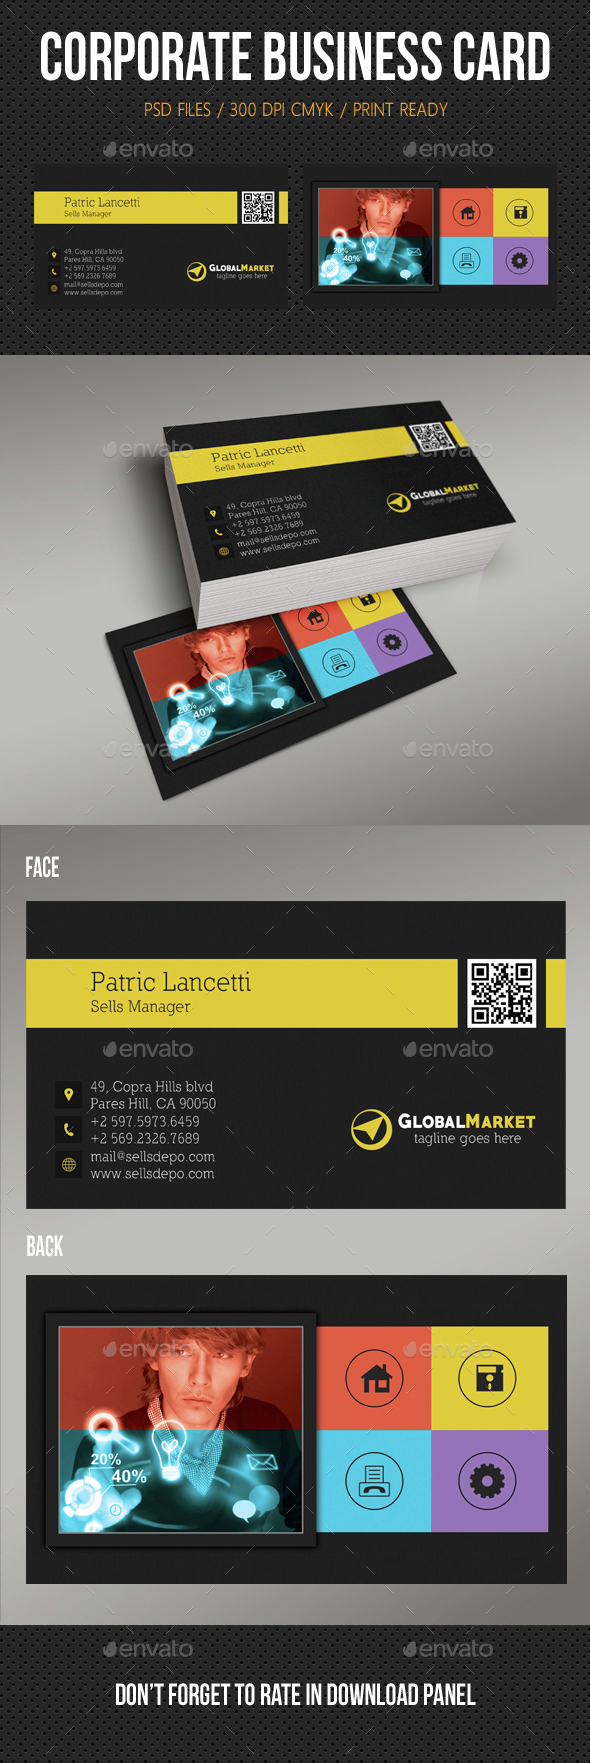 Metro Business Card 02 - Corporate Business Cards